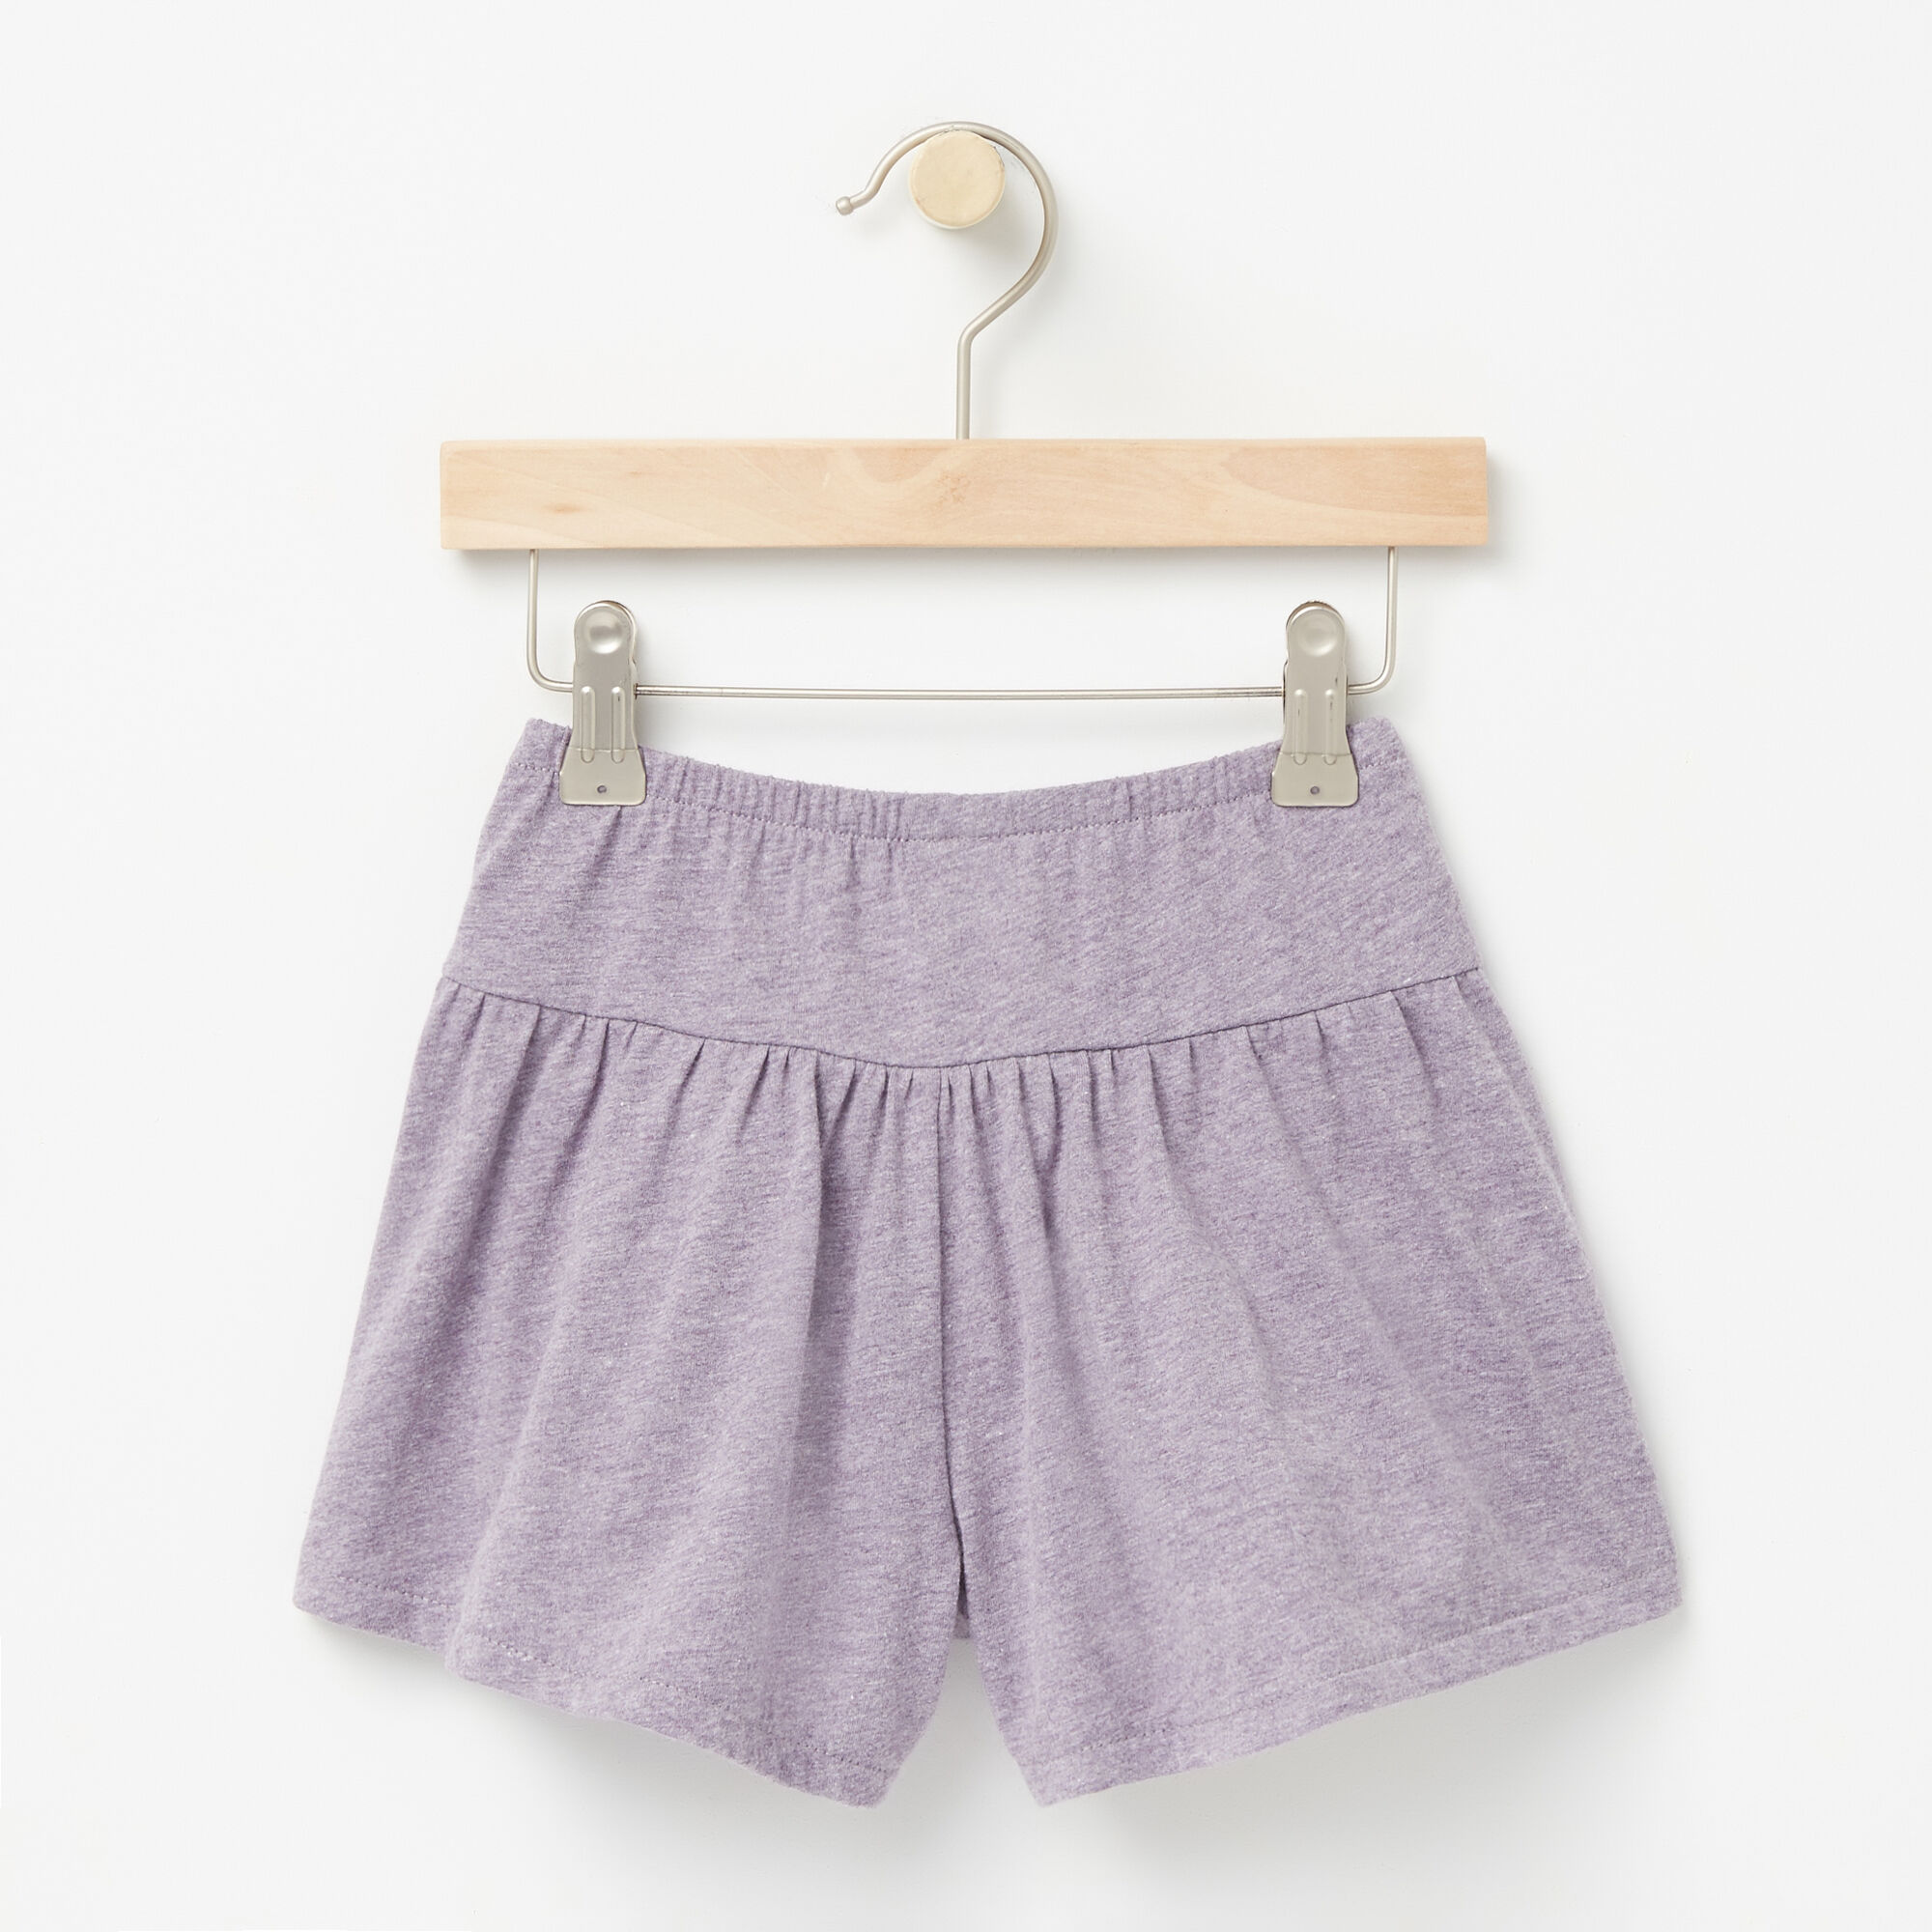 Toddler Juniper Skort